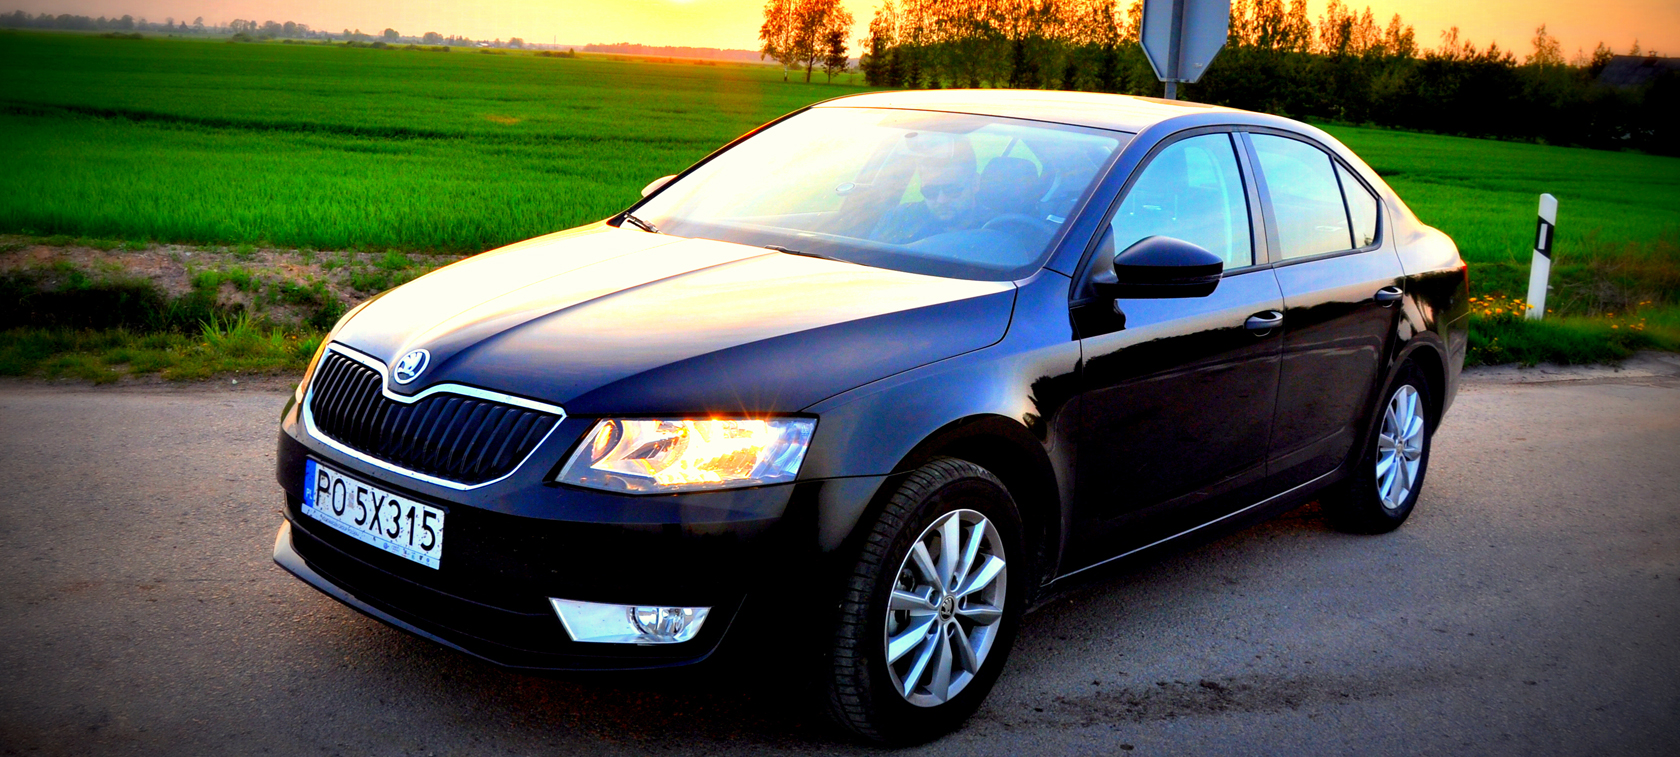 Skoda Octavia G-TEC - makes sense, but doesn't